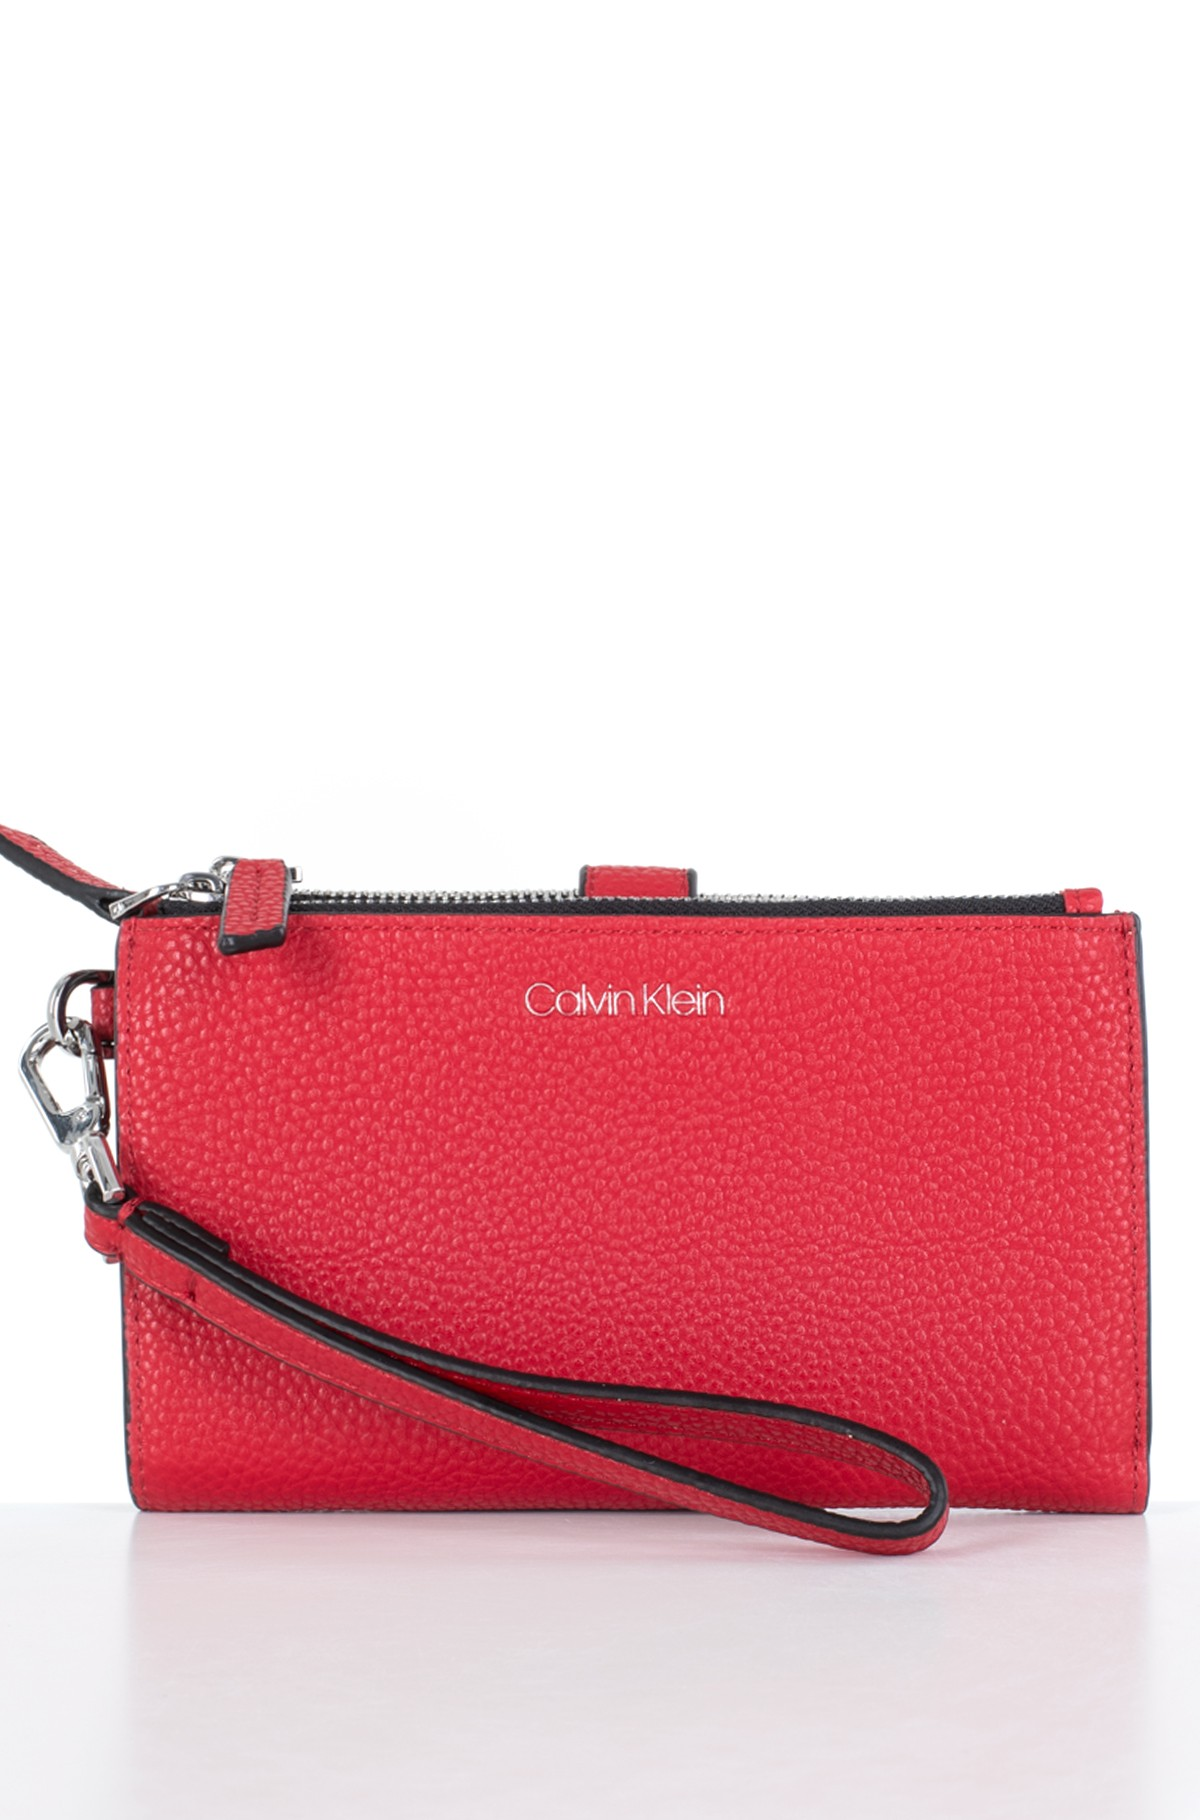 Rahakott CK EVERYDAY PH WRISTLET-full-1